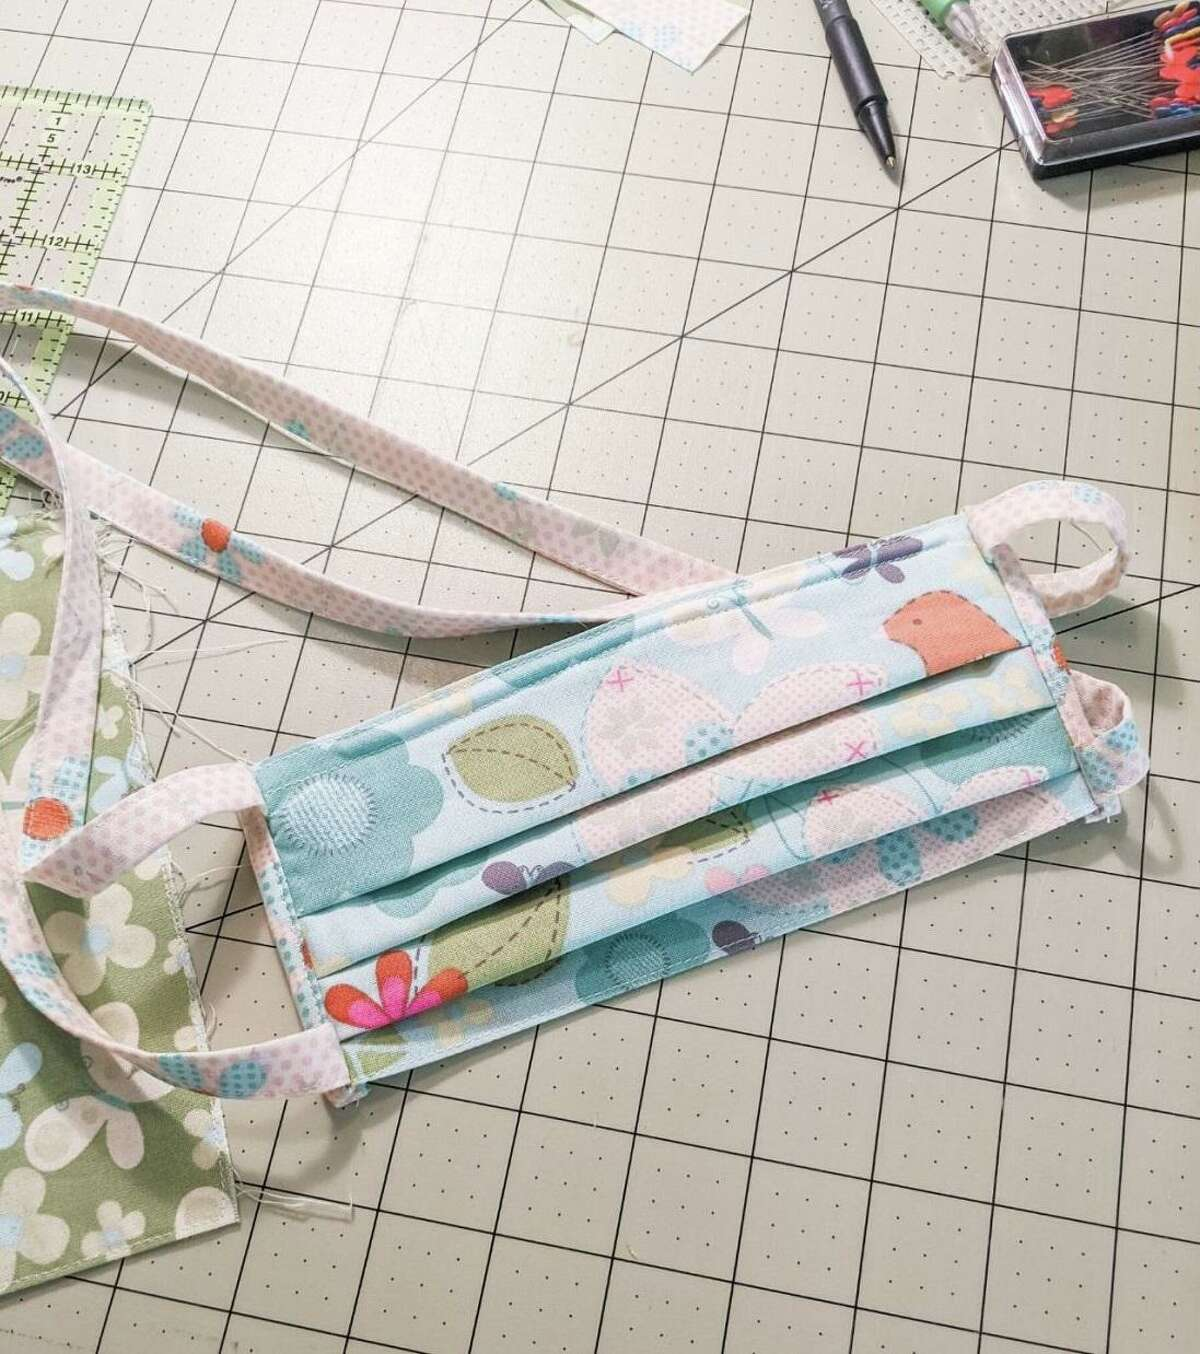 Moriah Chandler, a clinical assistant professor at the UH College of Optometry, has found a way to put her hobby ofsewing and quiltingto good use. Chandler is creating masks for doctors and nurses battling the COVID-19 outbreak.